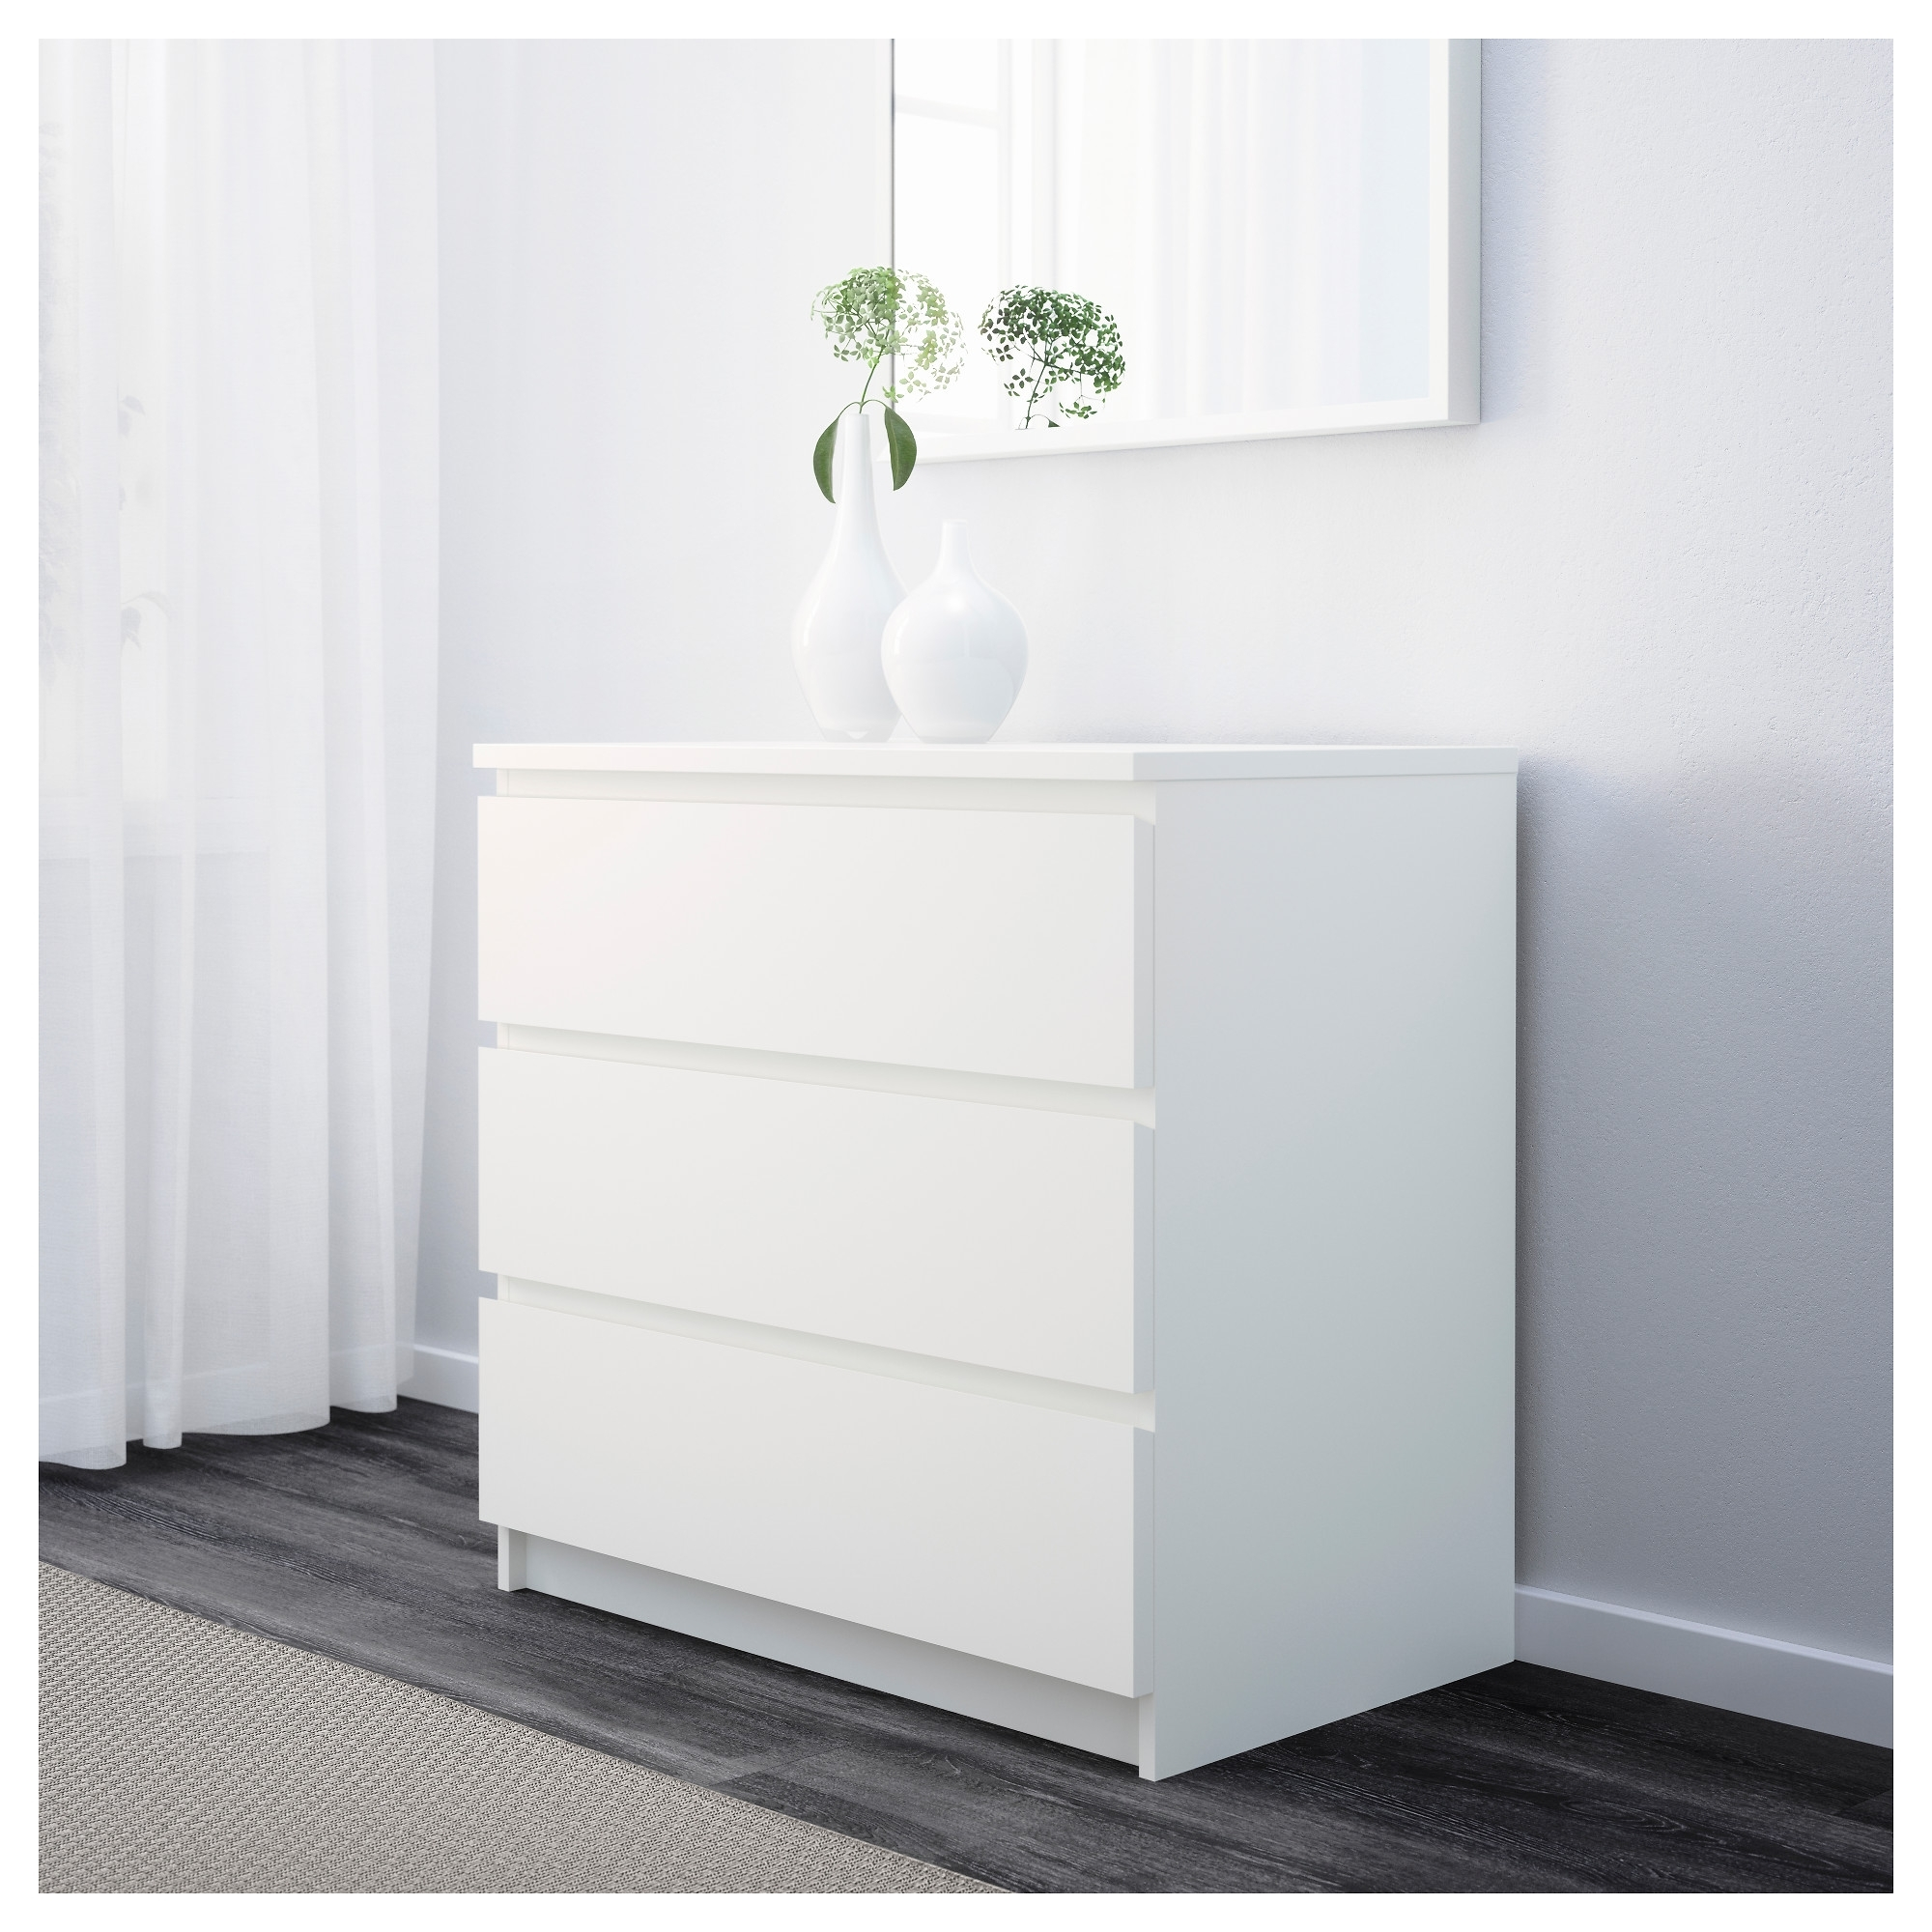 Ikea Lithuania - Shop For Furniture, Lighting, Home Accessories & More intended for Koip 6 Door Sideboards (Image 19 of 30)